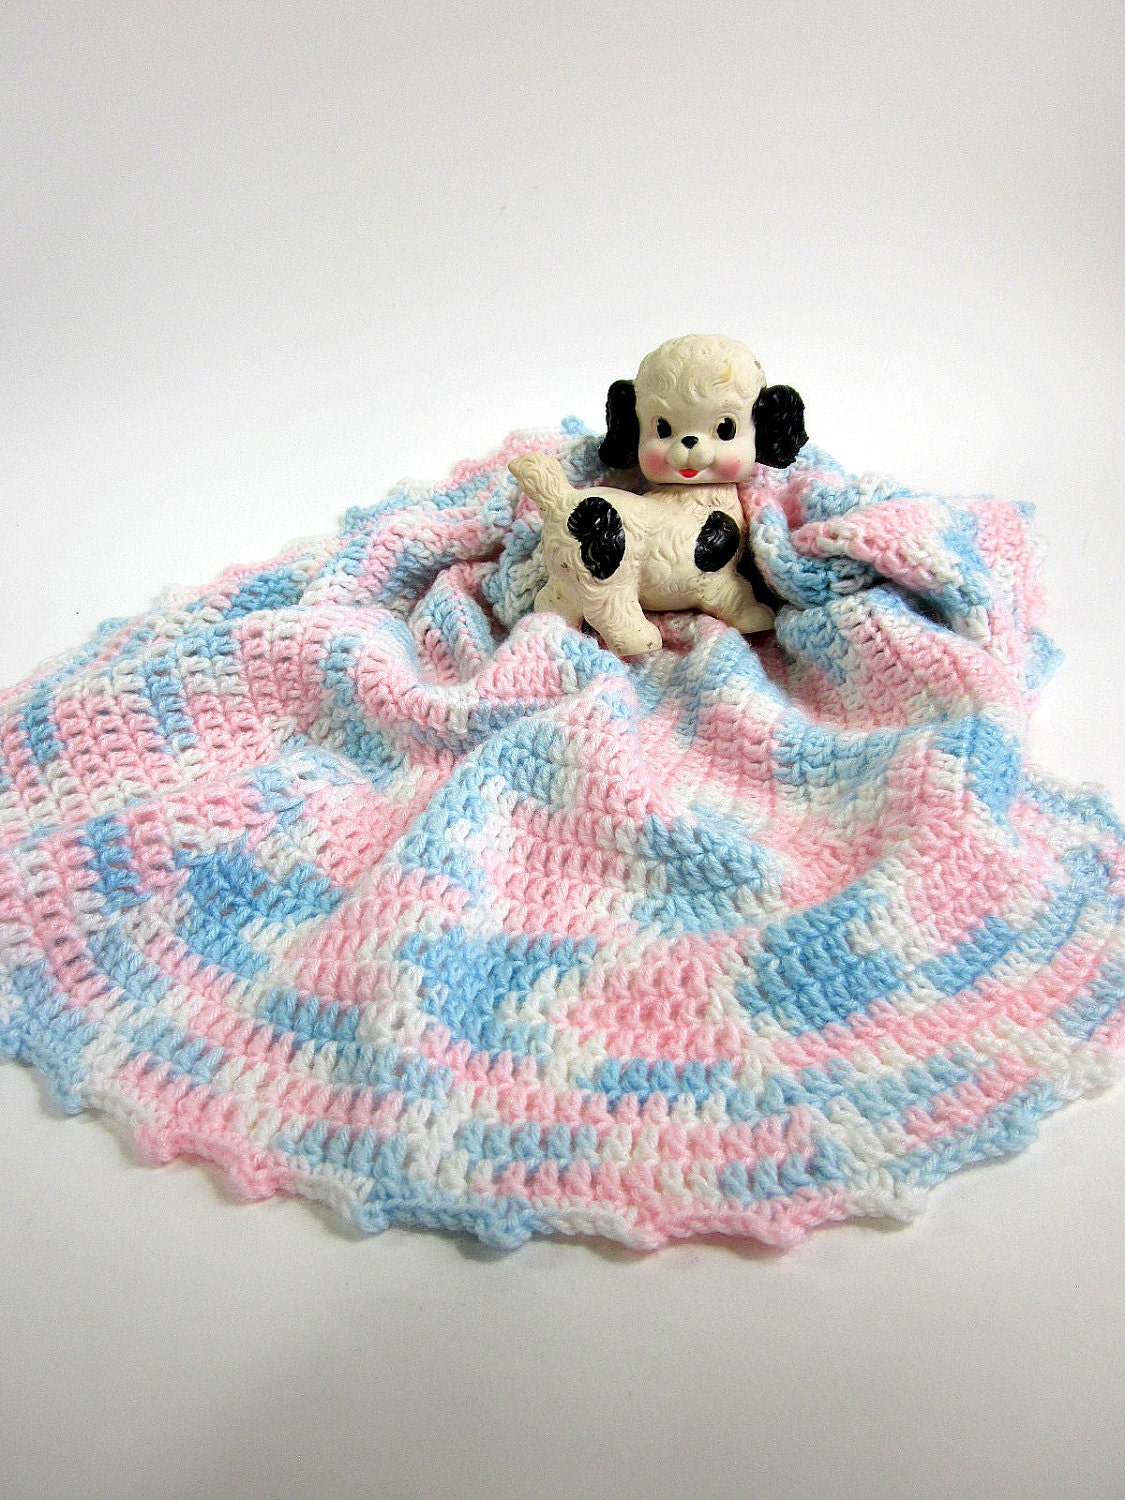 sale // Vintage Crocheted Pink and Blue Oval Baby Blanket - OopseeDaisies